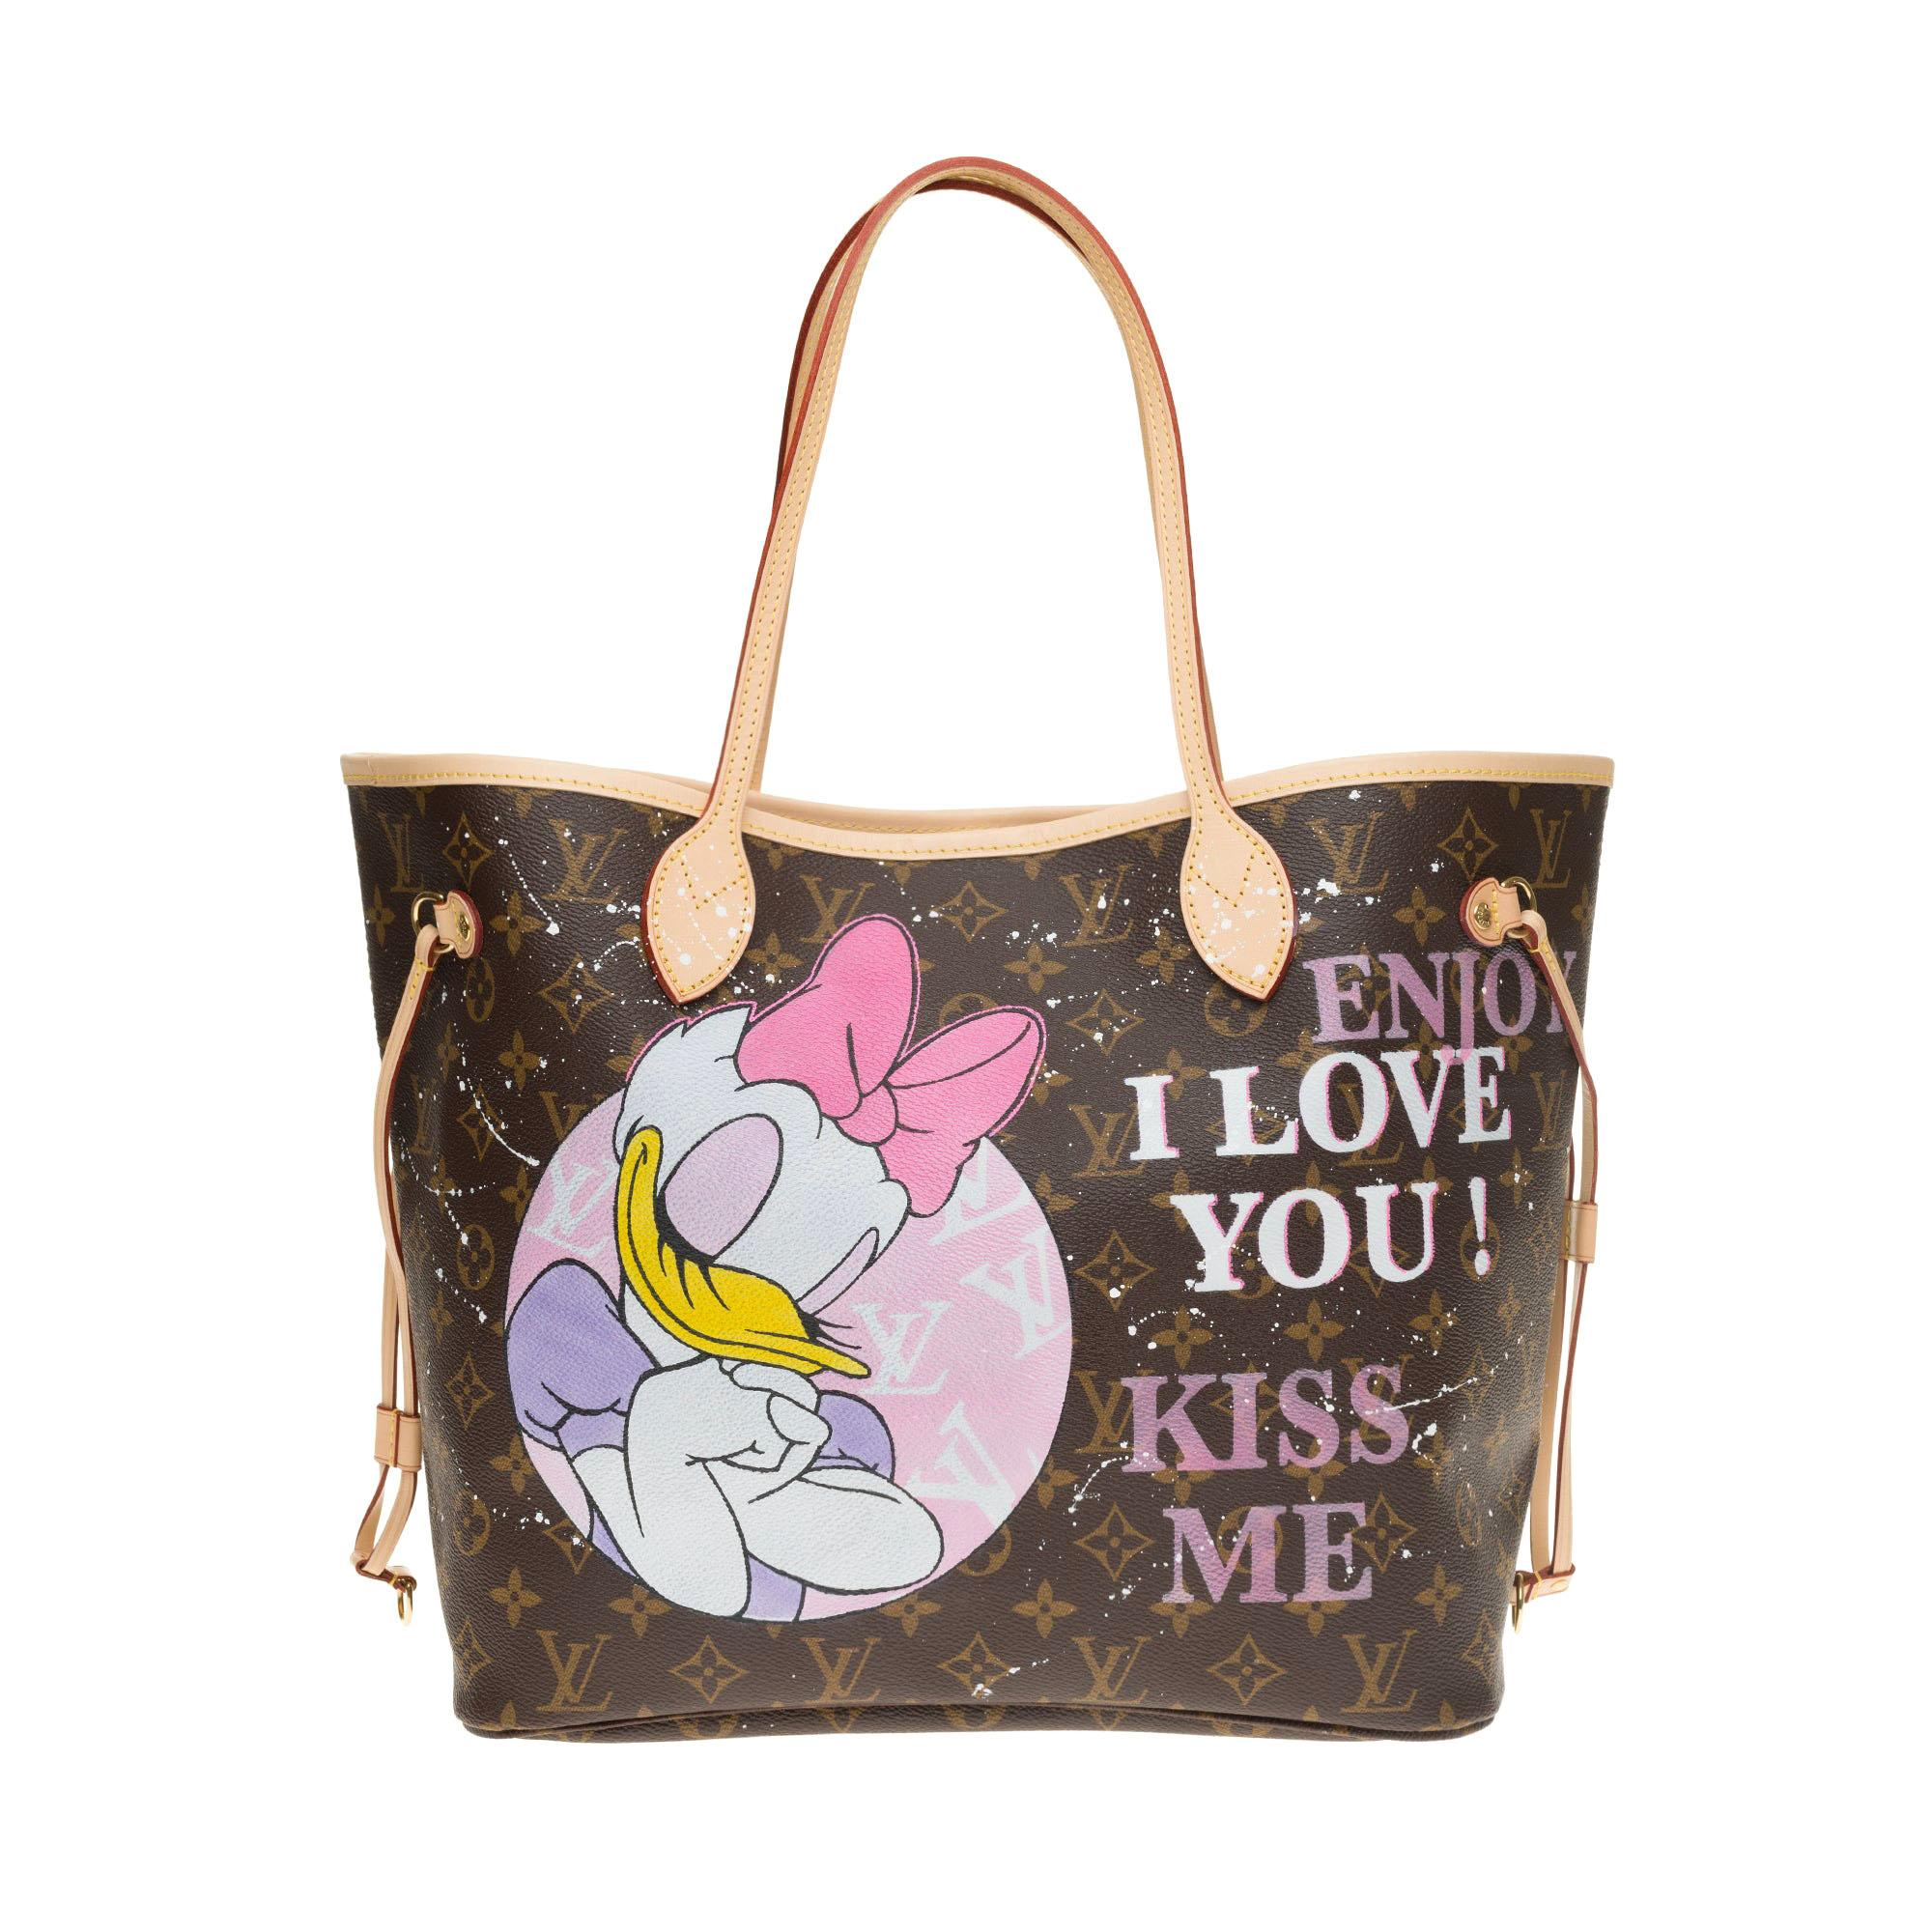 """Neverfull MM handbag in Monogram canvas with pouch customized """"My Daily Mood"""""""